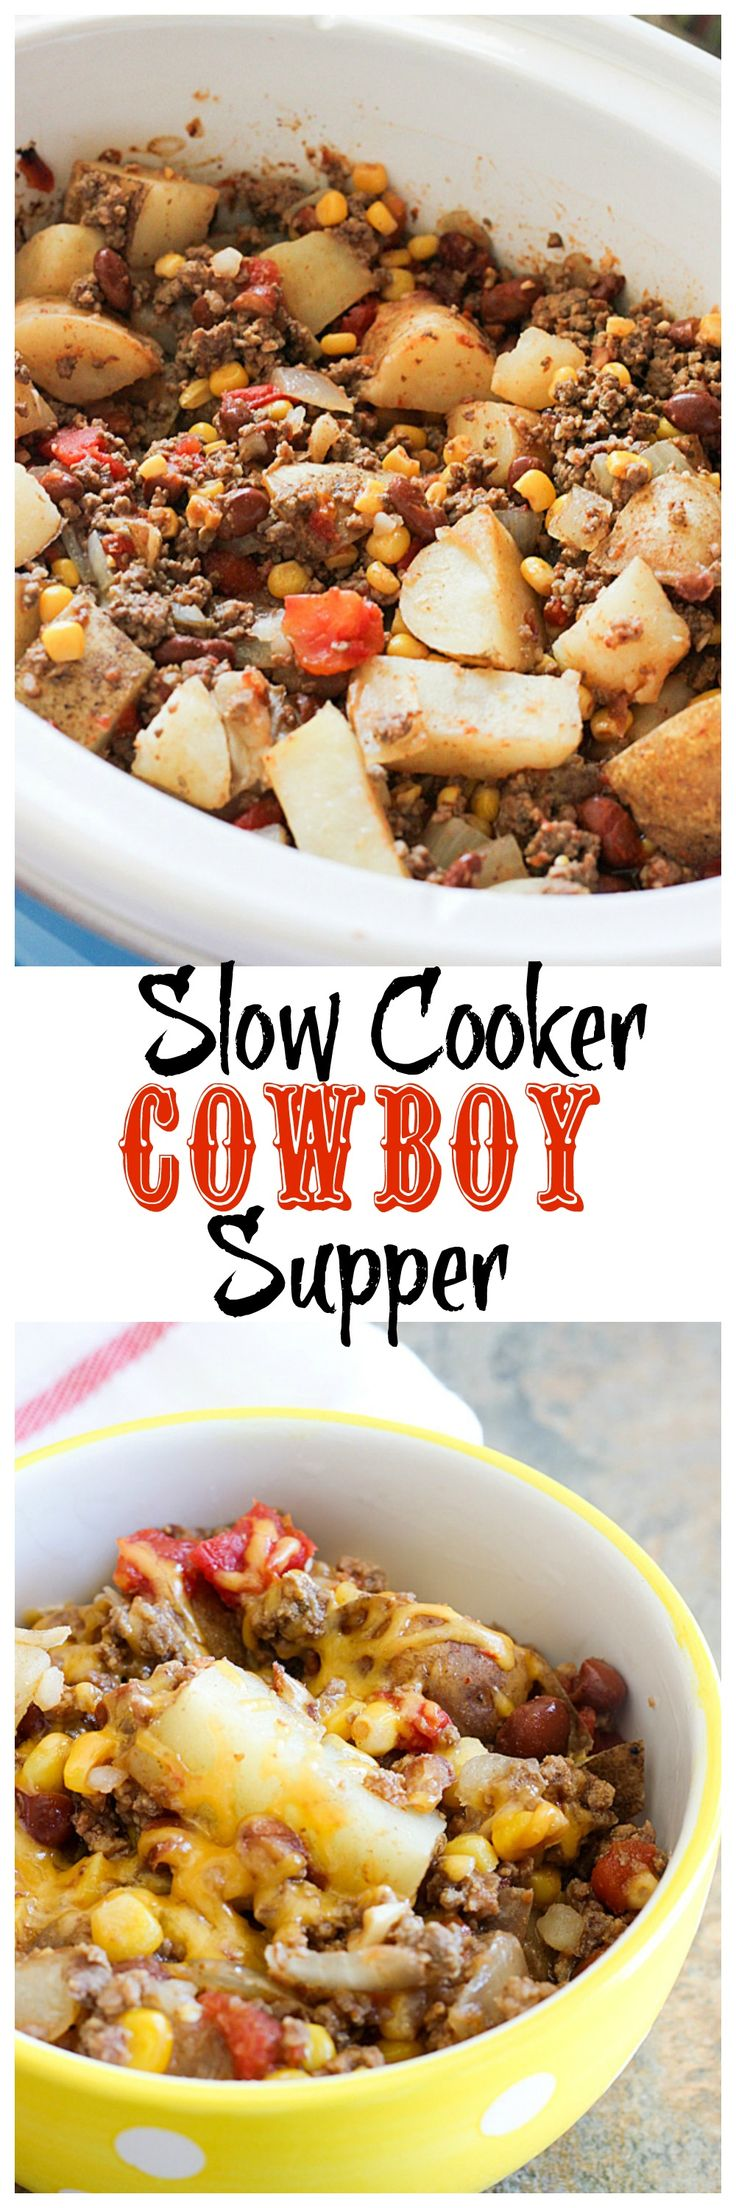 Cowboy Supper is made in the slow cooker so you can get on with the rest of your day. Dinner is taken care of in no time at all! | mandysrecipeboxblog.com: